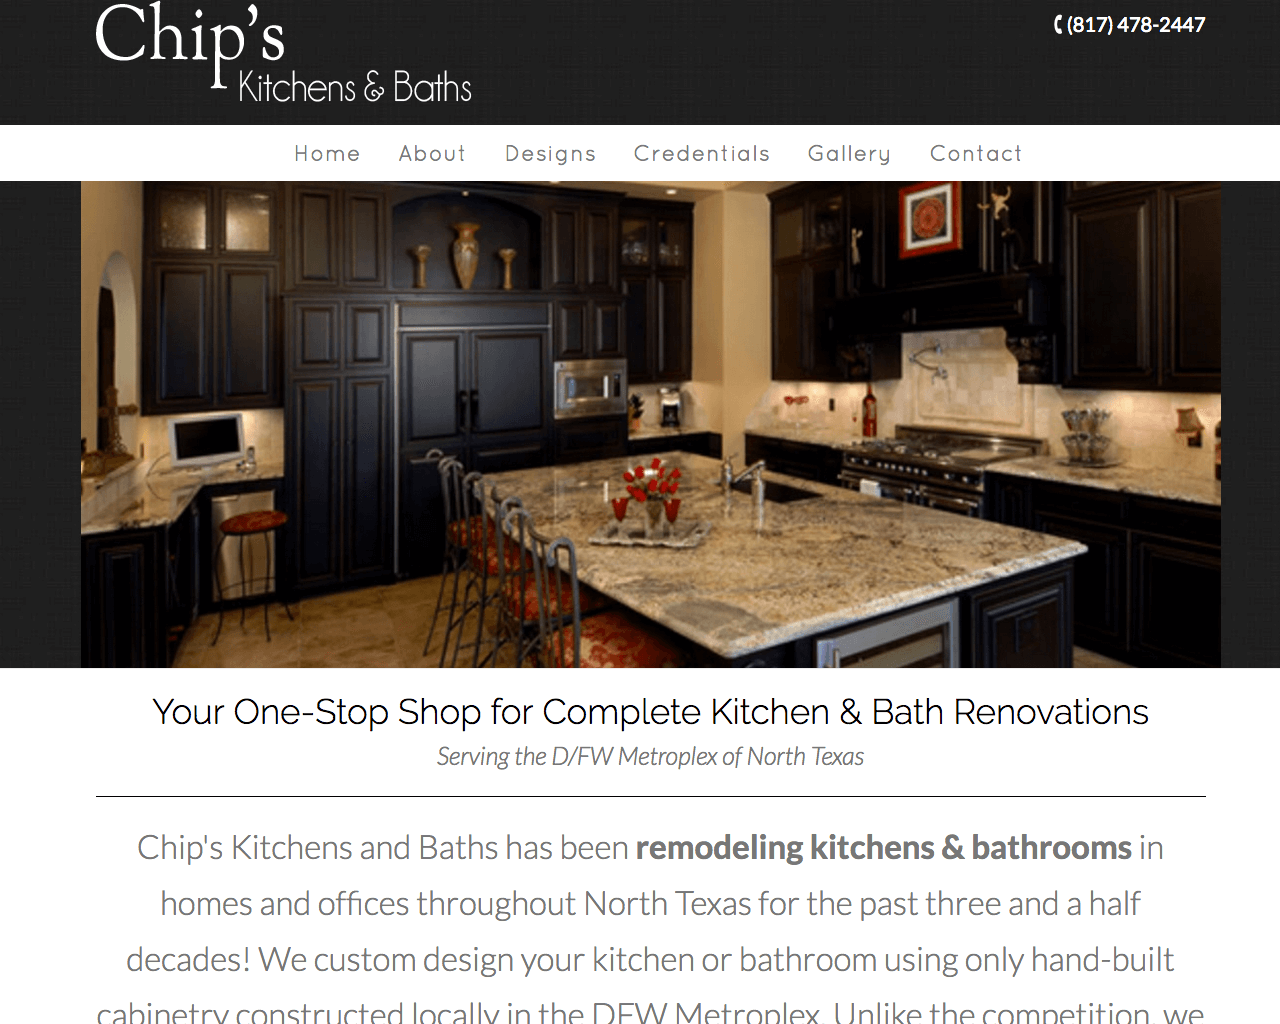 Chip's Kitchens and Baths